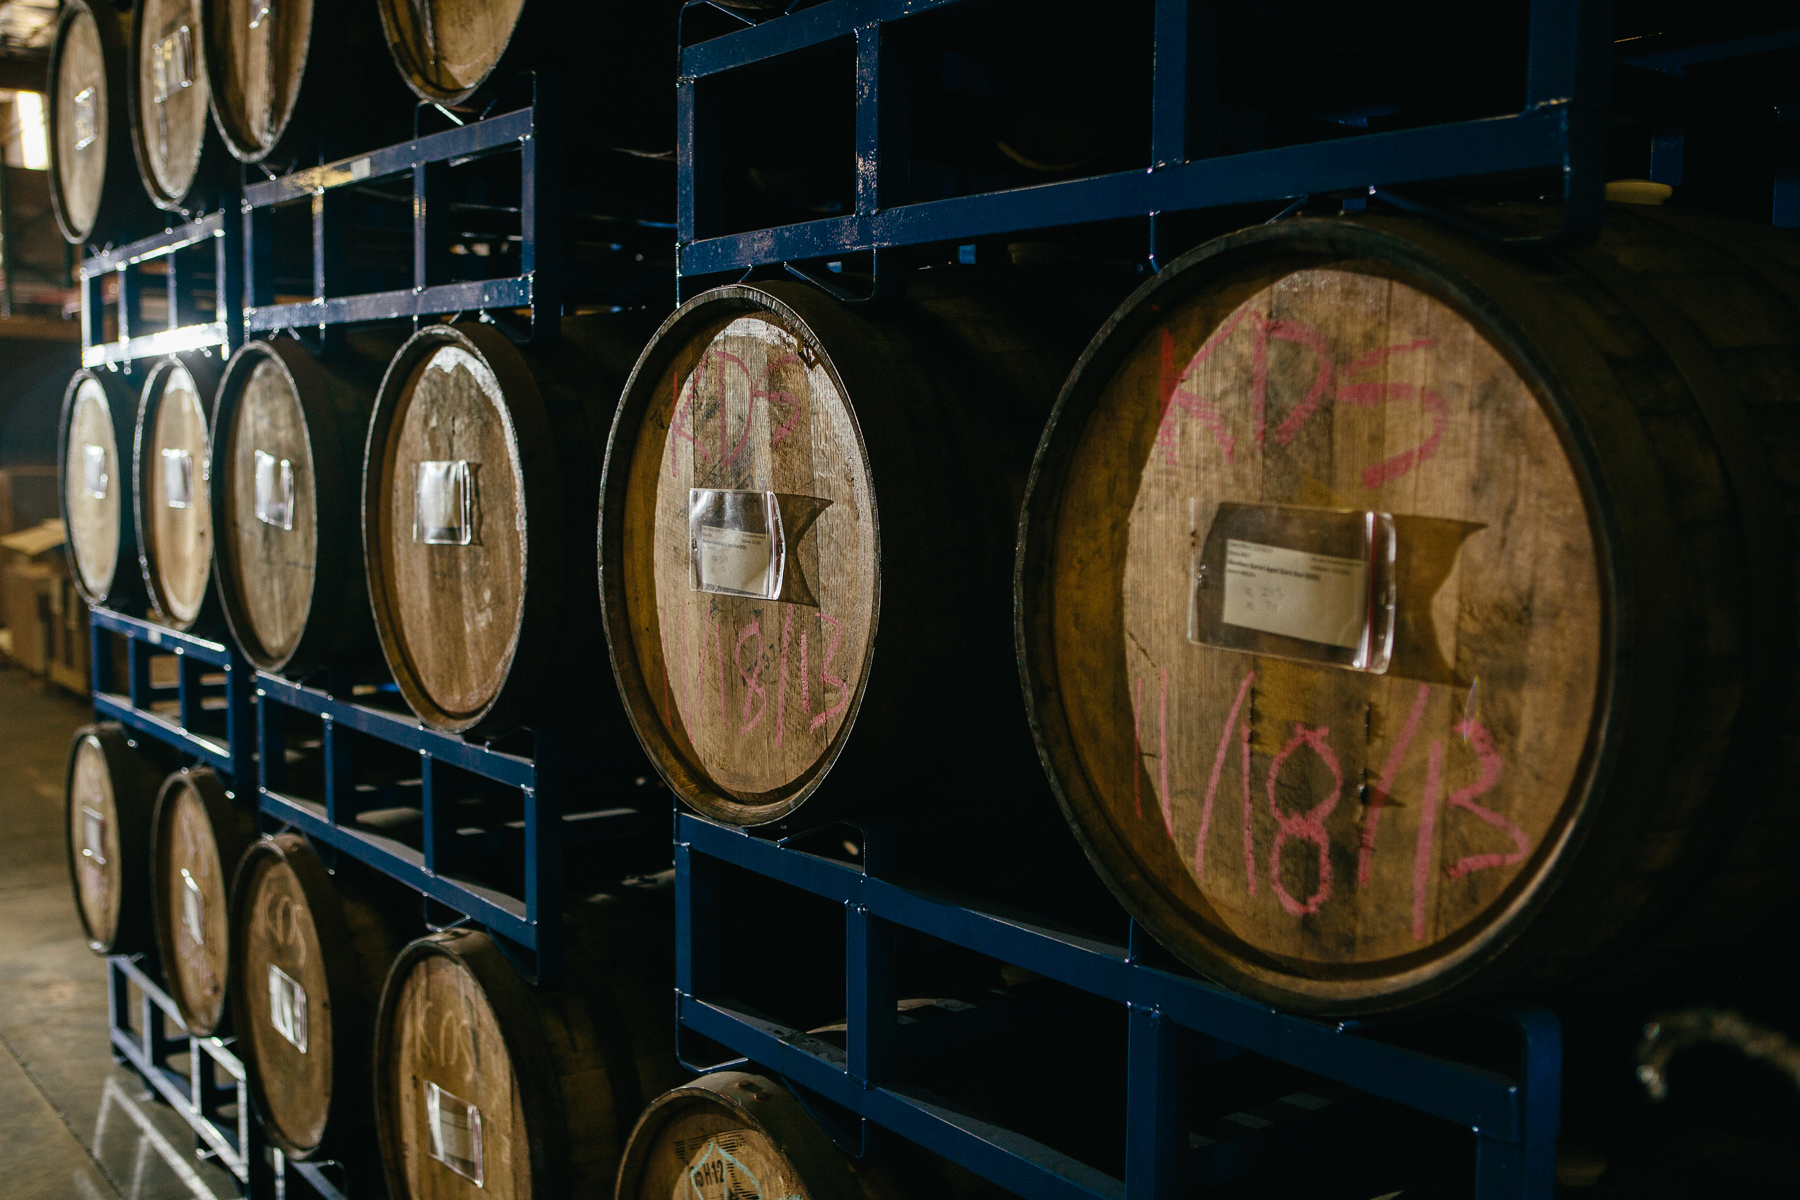 Fremont Brewing's Barrel-Aged Beers